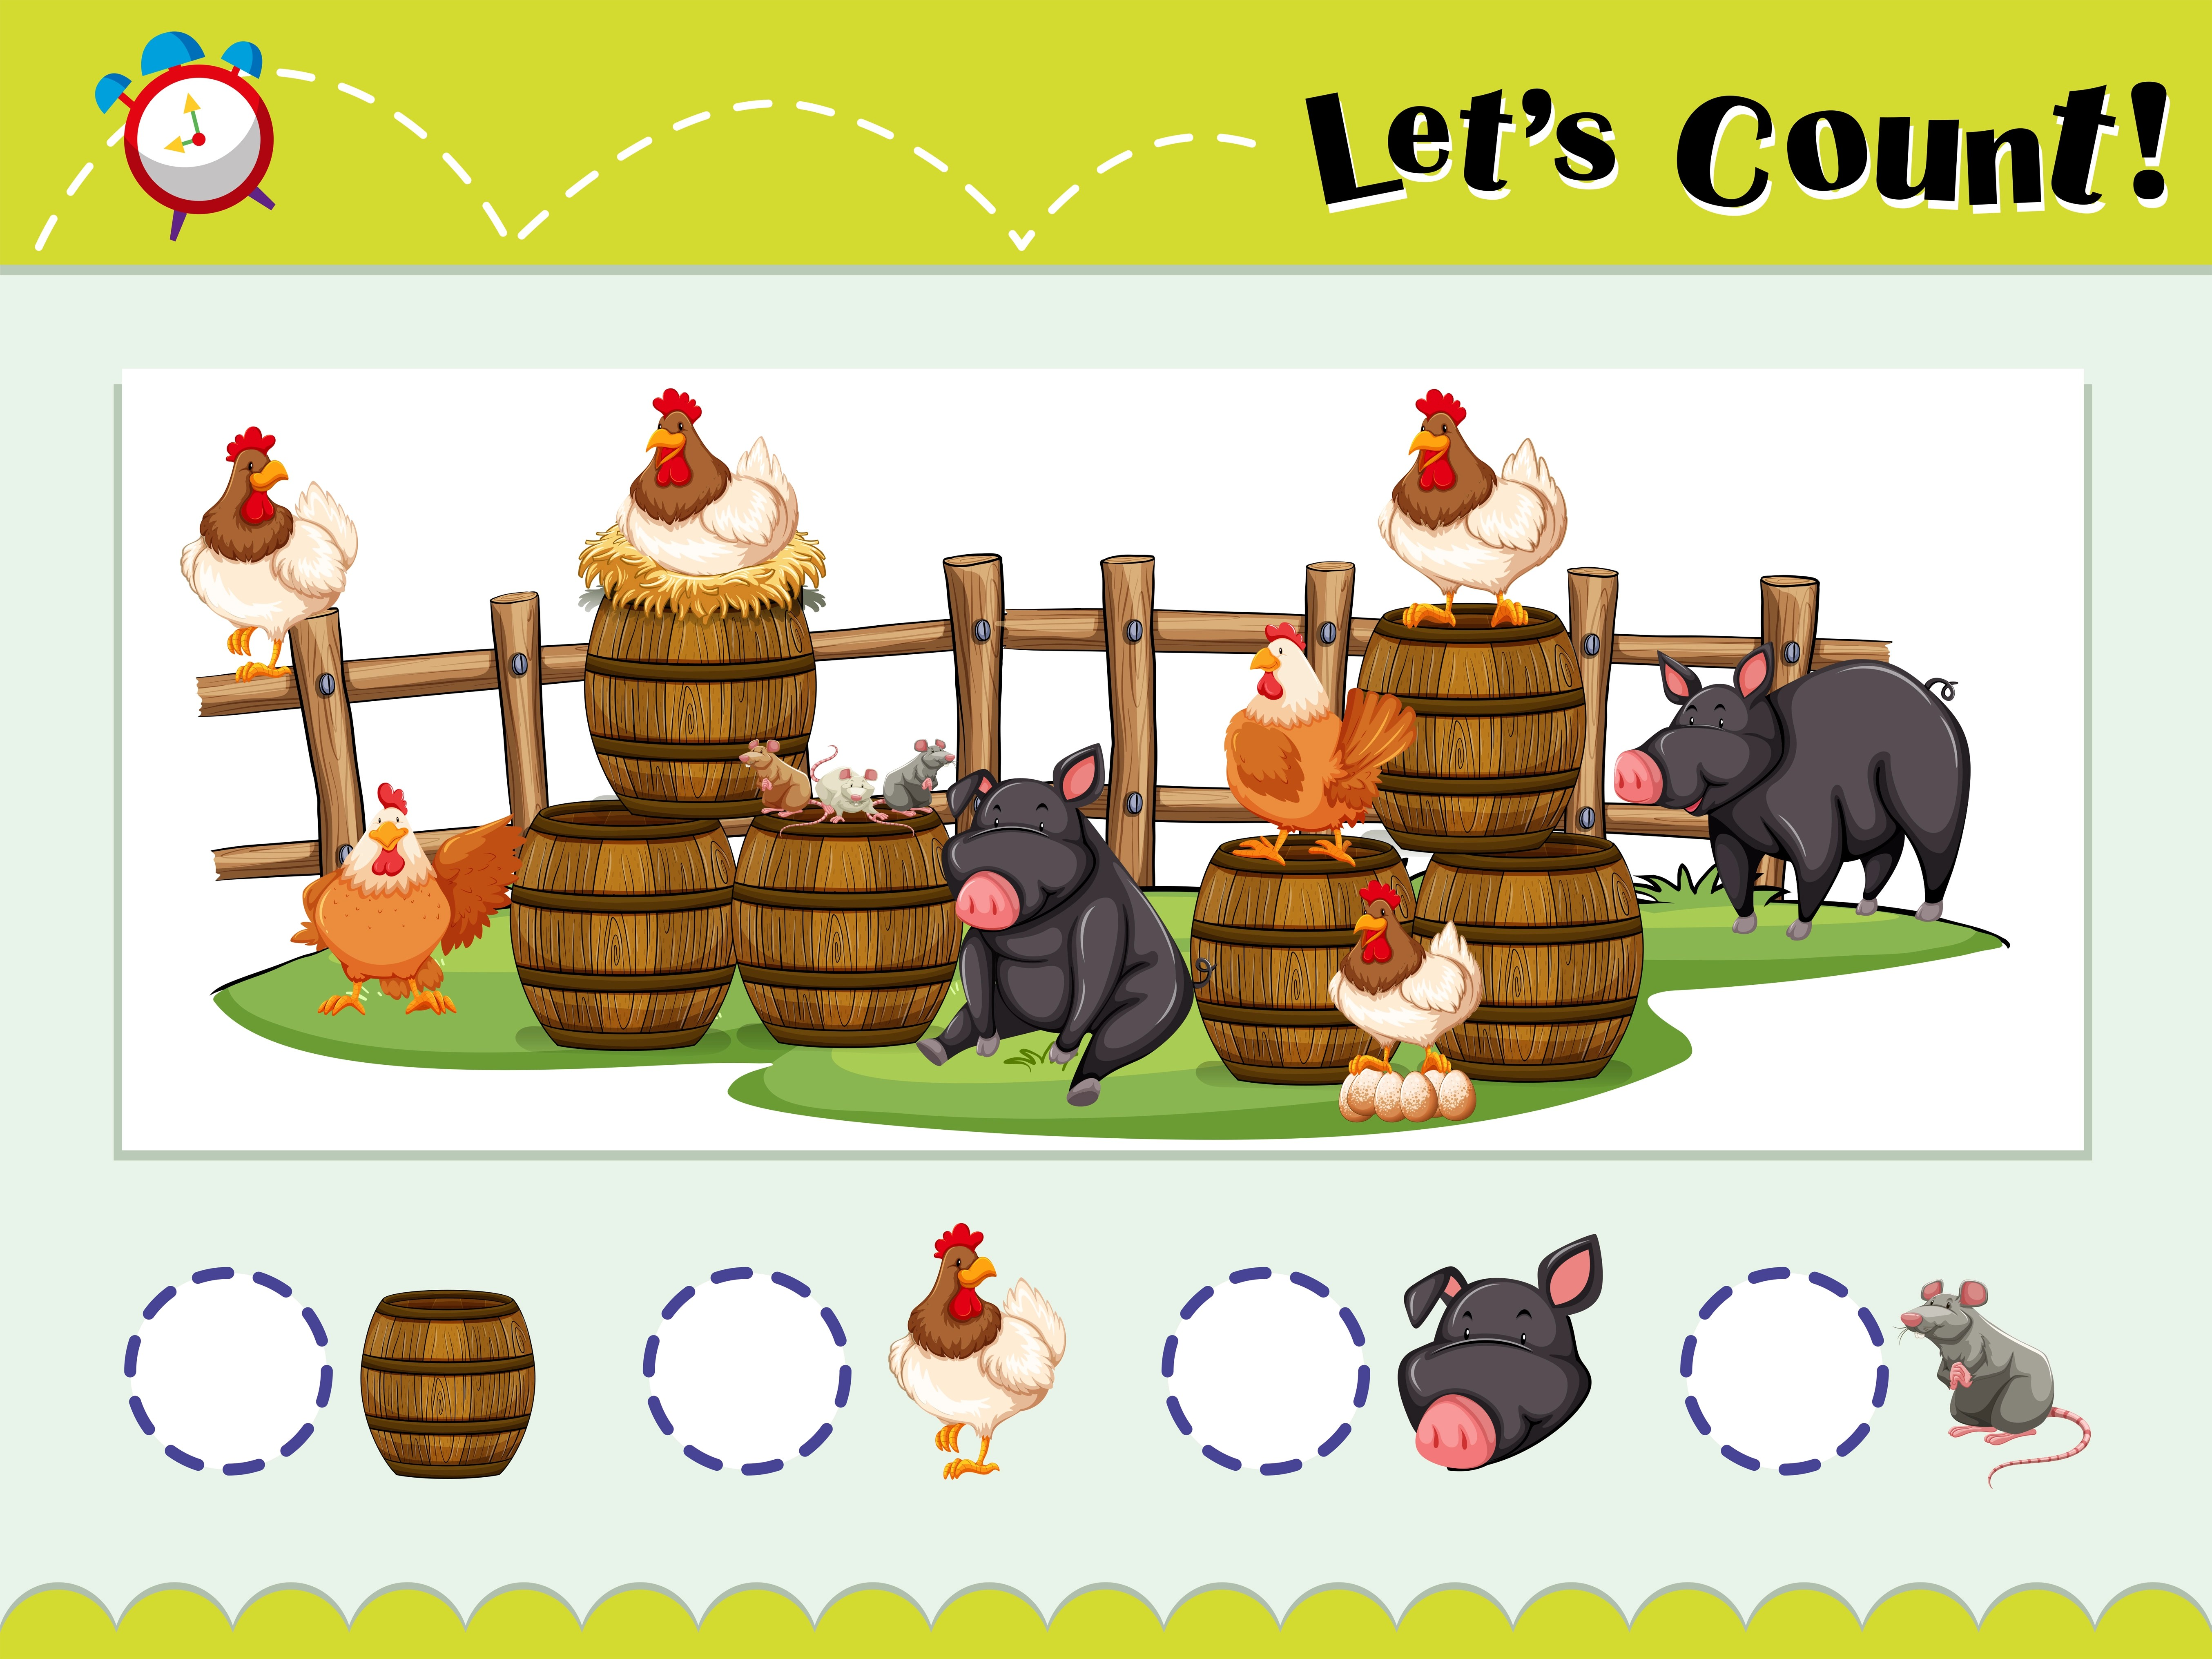 Game Template For Counting Animals